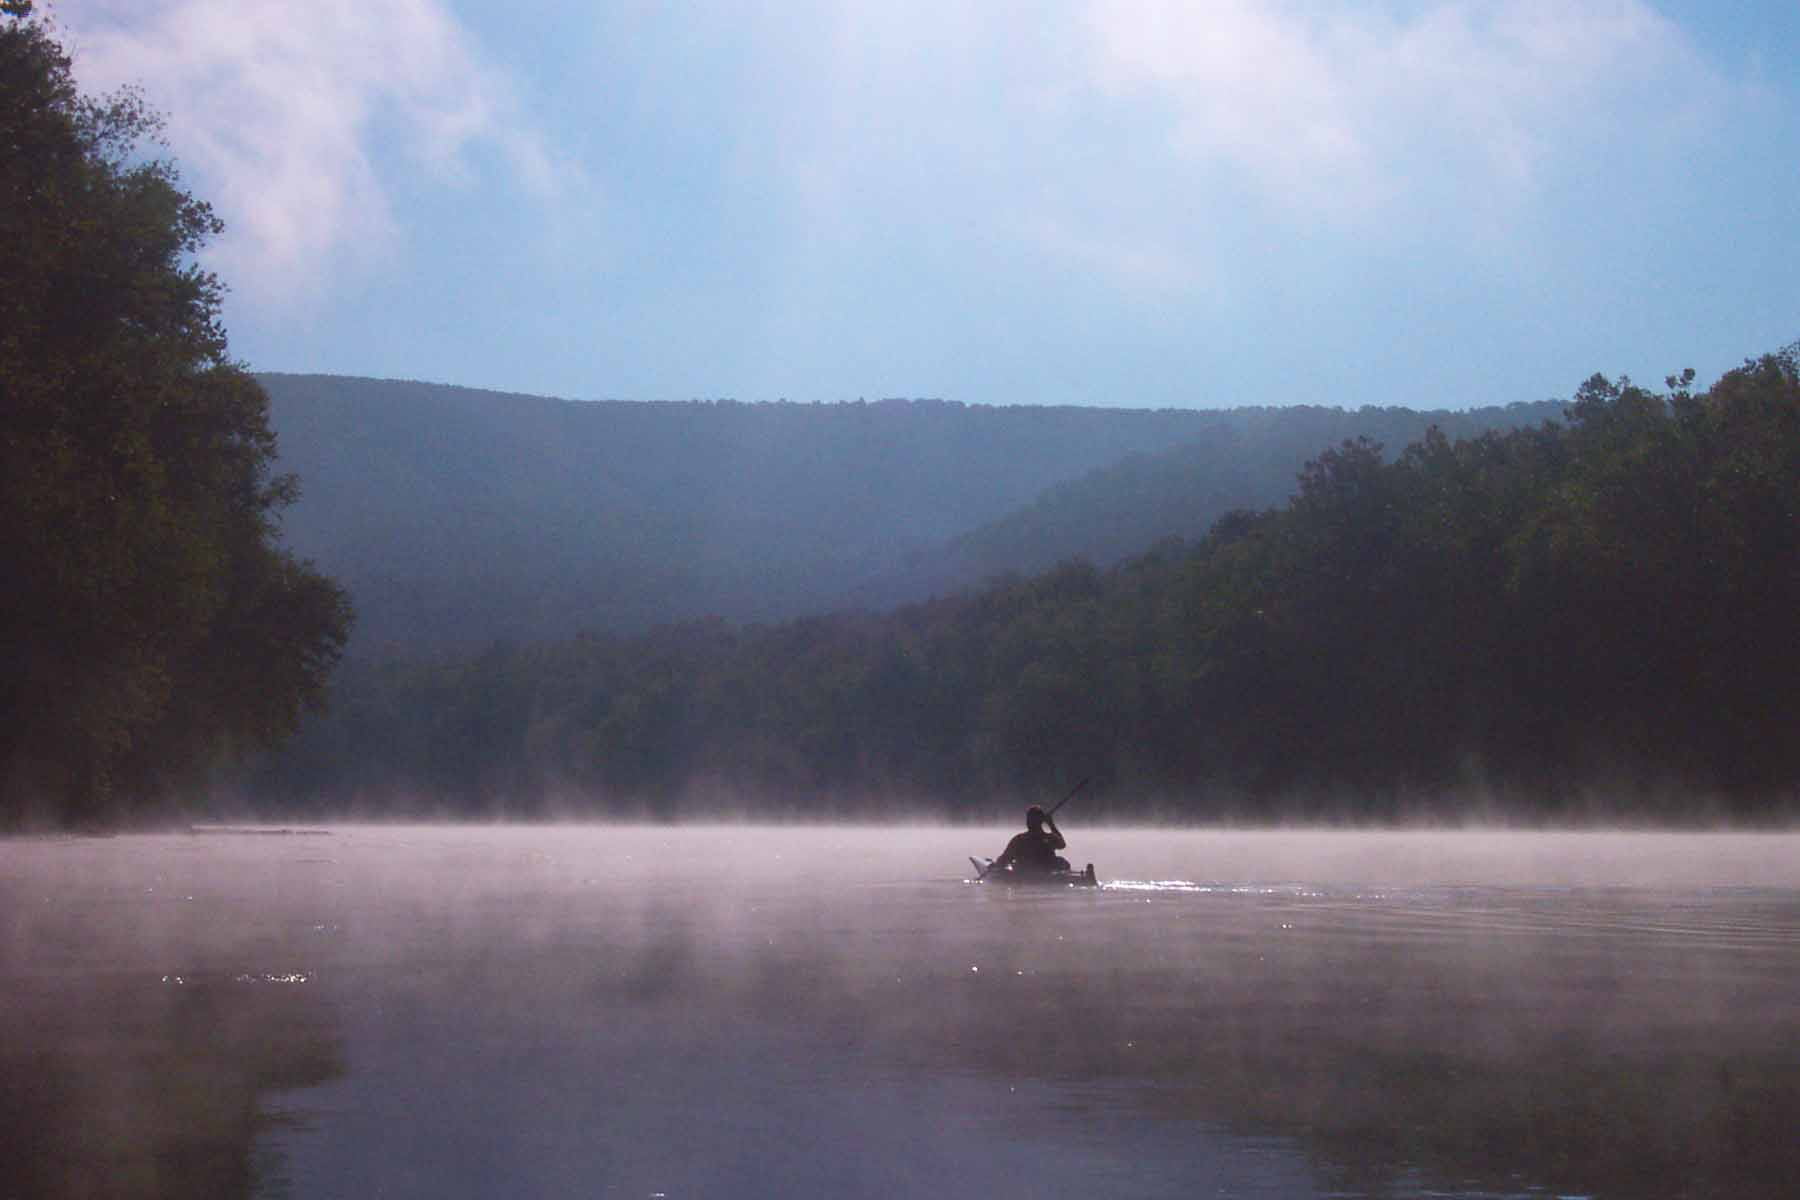 kayak, mist, river